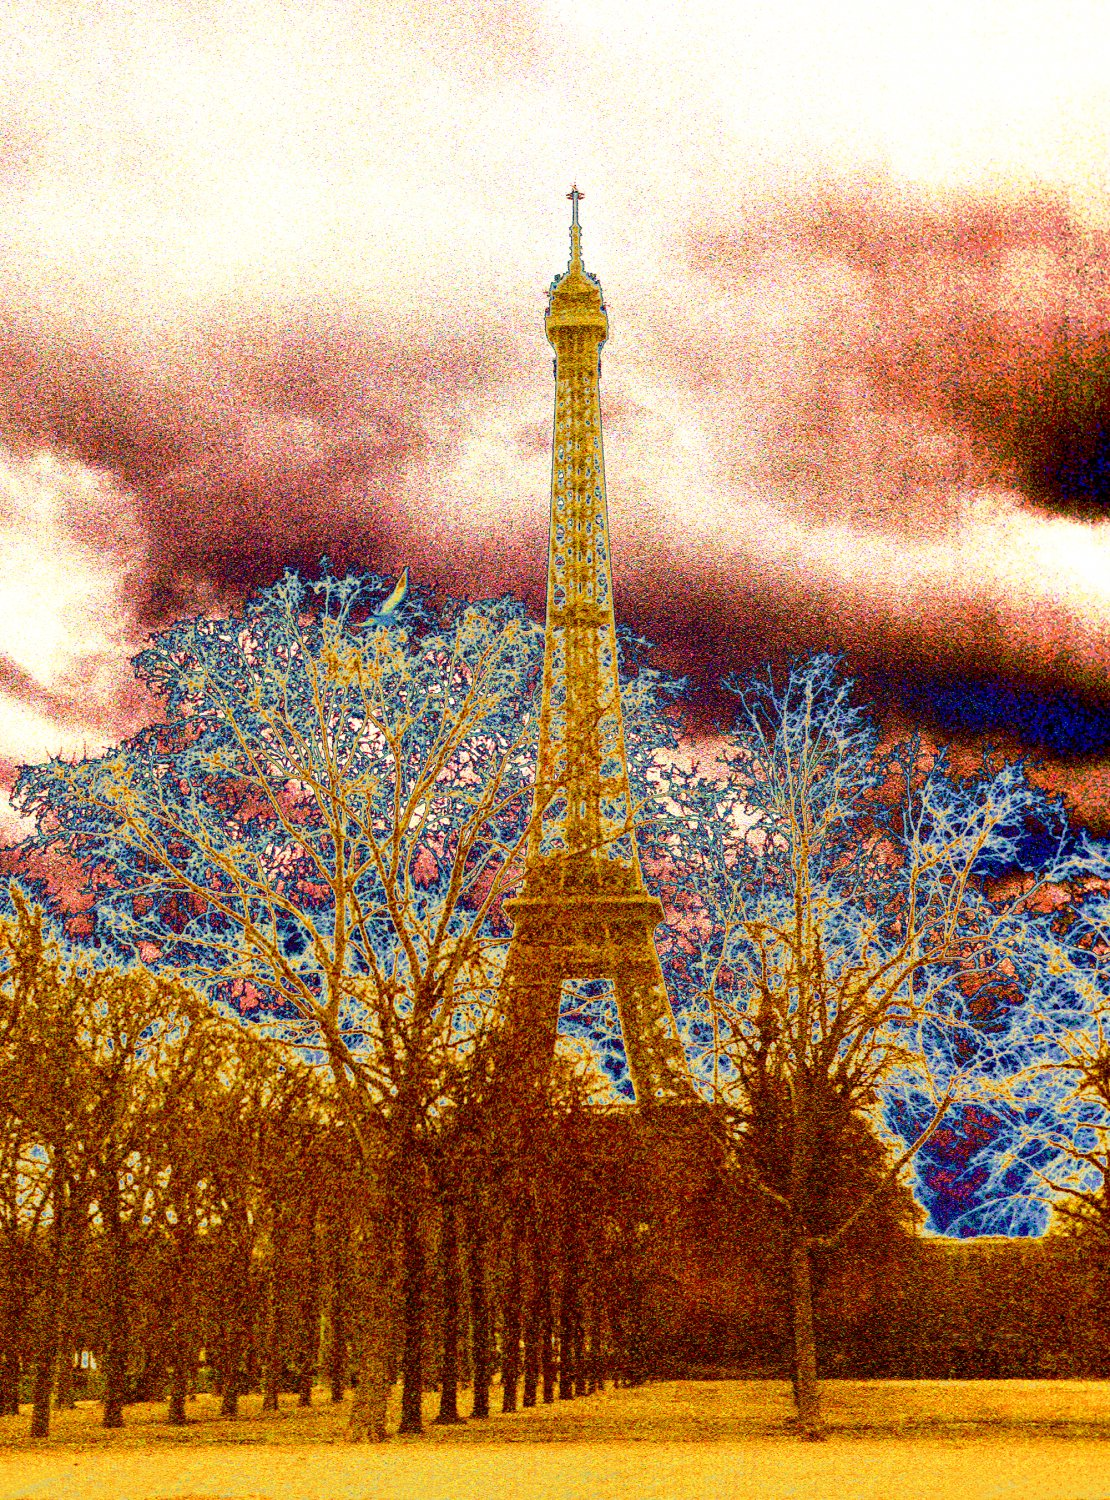 - The Eiffel tower in the manner of a nineteenth century photographer. - Paris, eiffel tower - Tony Karp, design, art, photography, techno-impressionist, techno-impressionism, aerial photography , drone , drones , dji , mavic pro , video , 3D printing - Books -